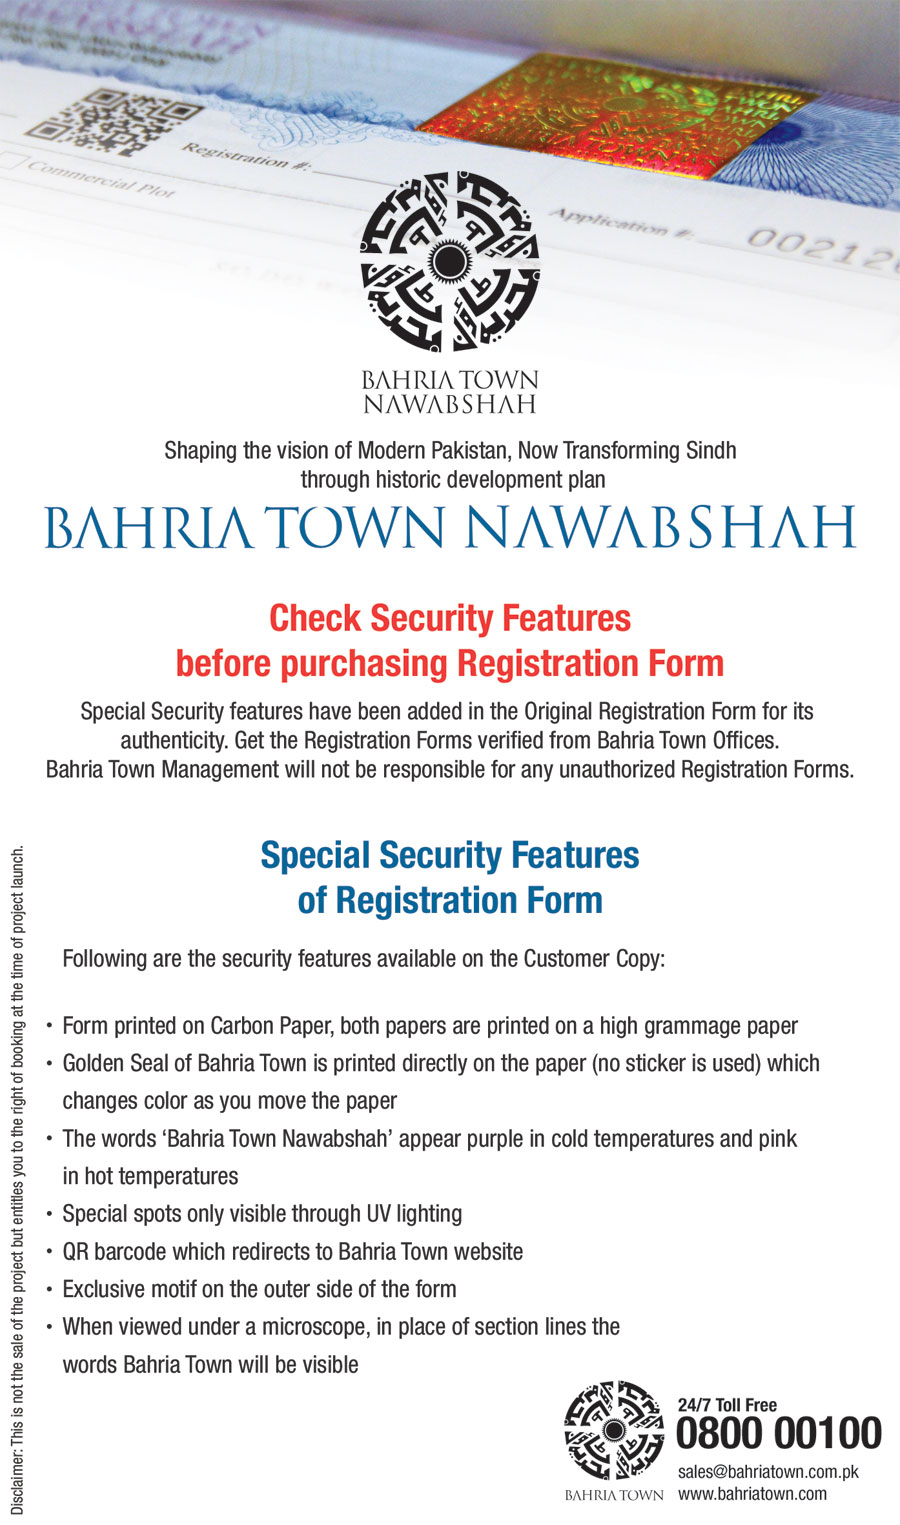 Bahria Town Nawabshah – Special Security Features of Registration Form